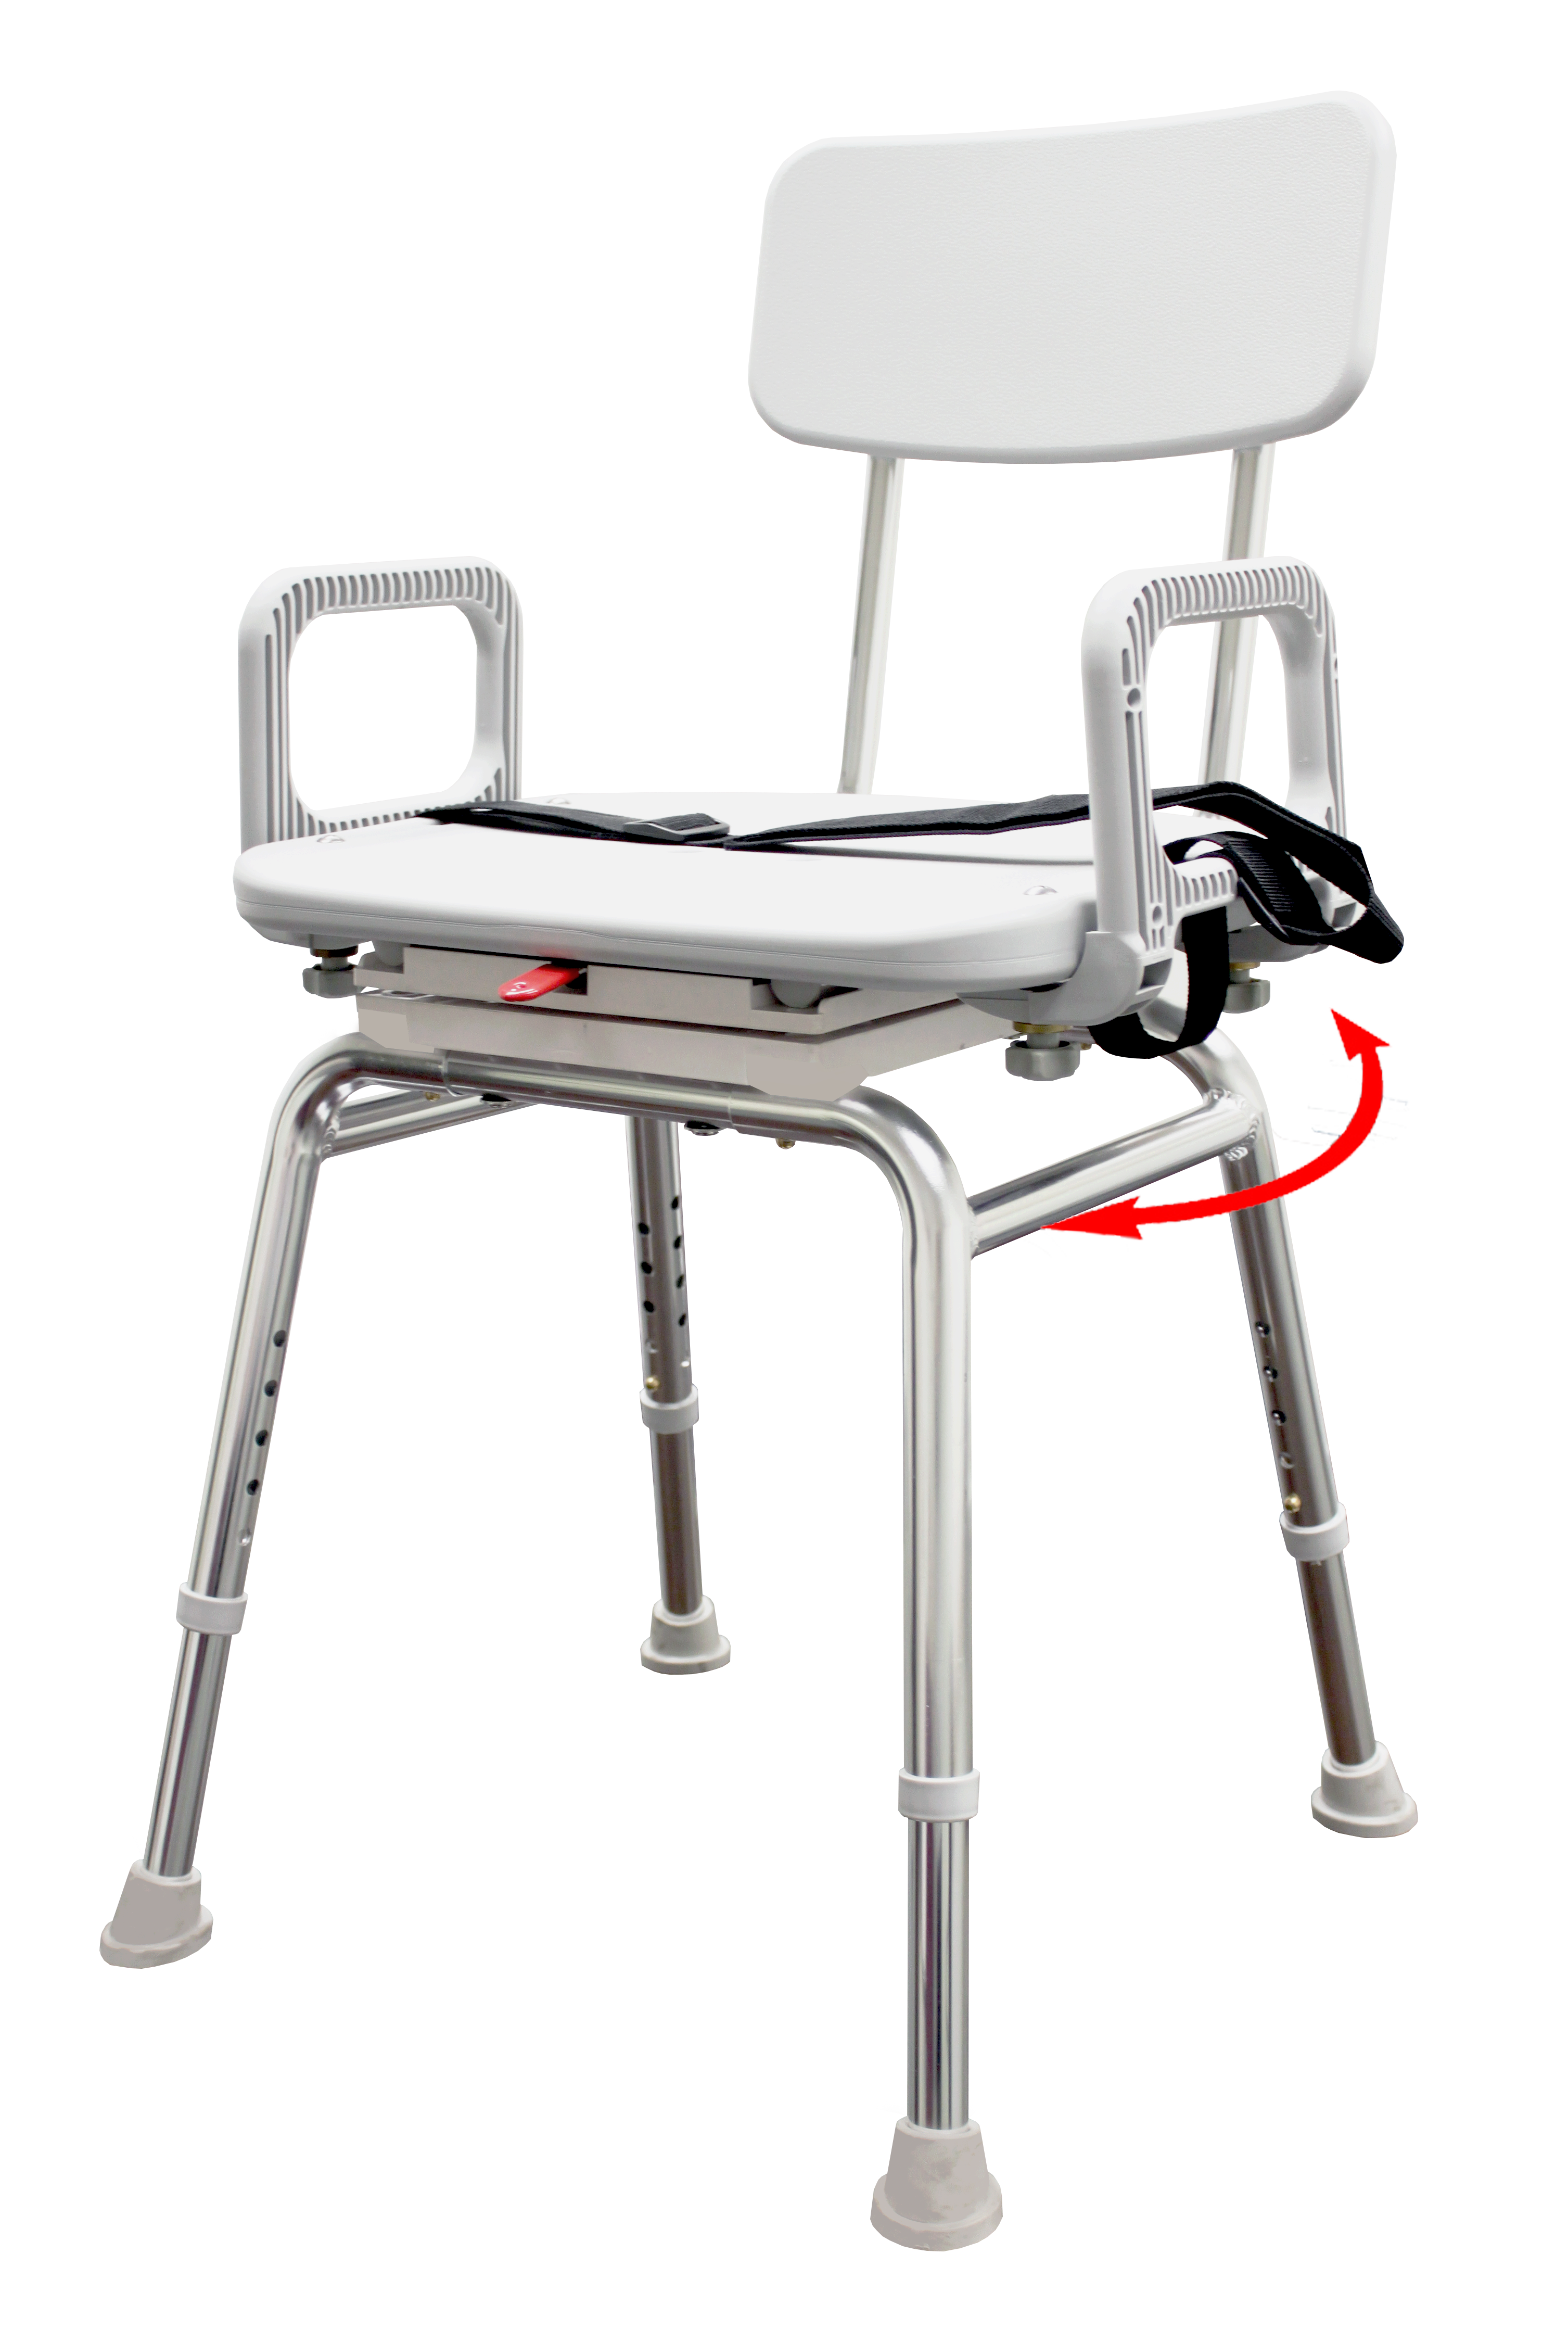 Eagle Swivel Shower Chair 75232 at IndeMedical.com